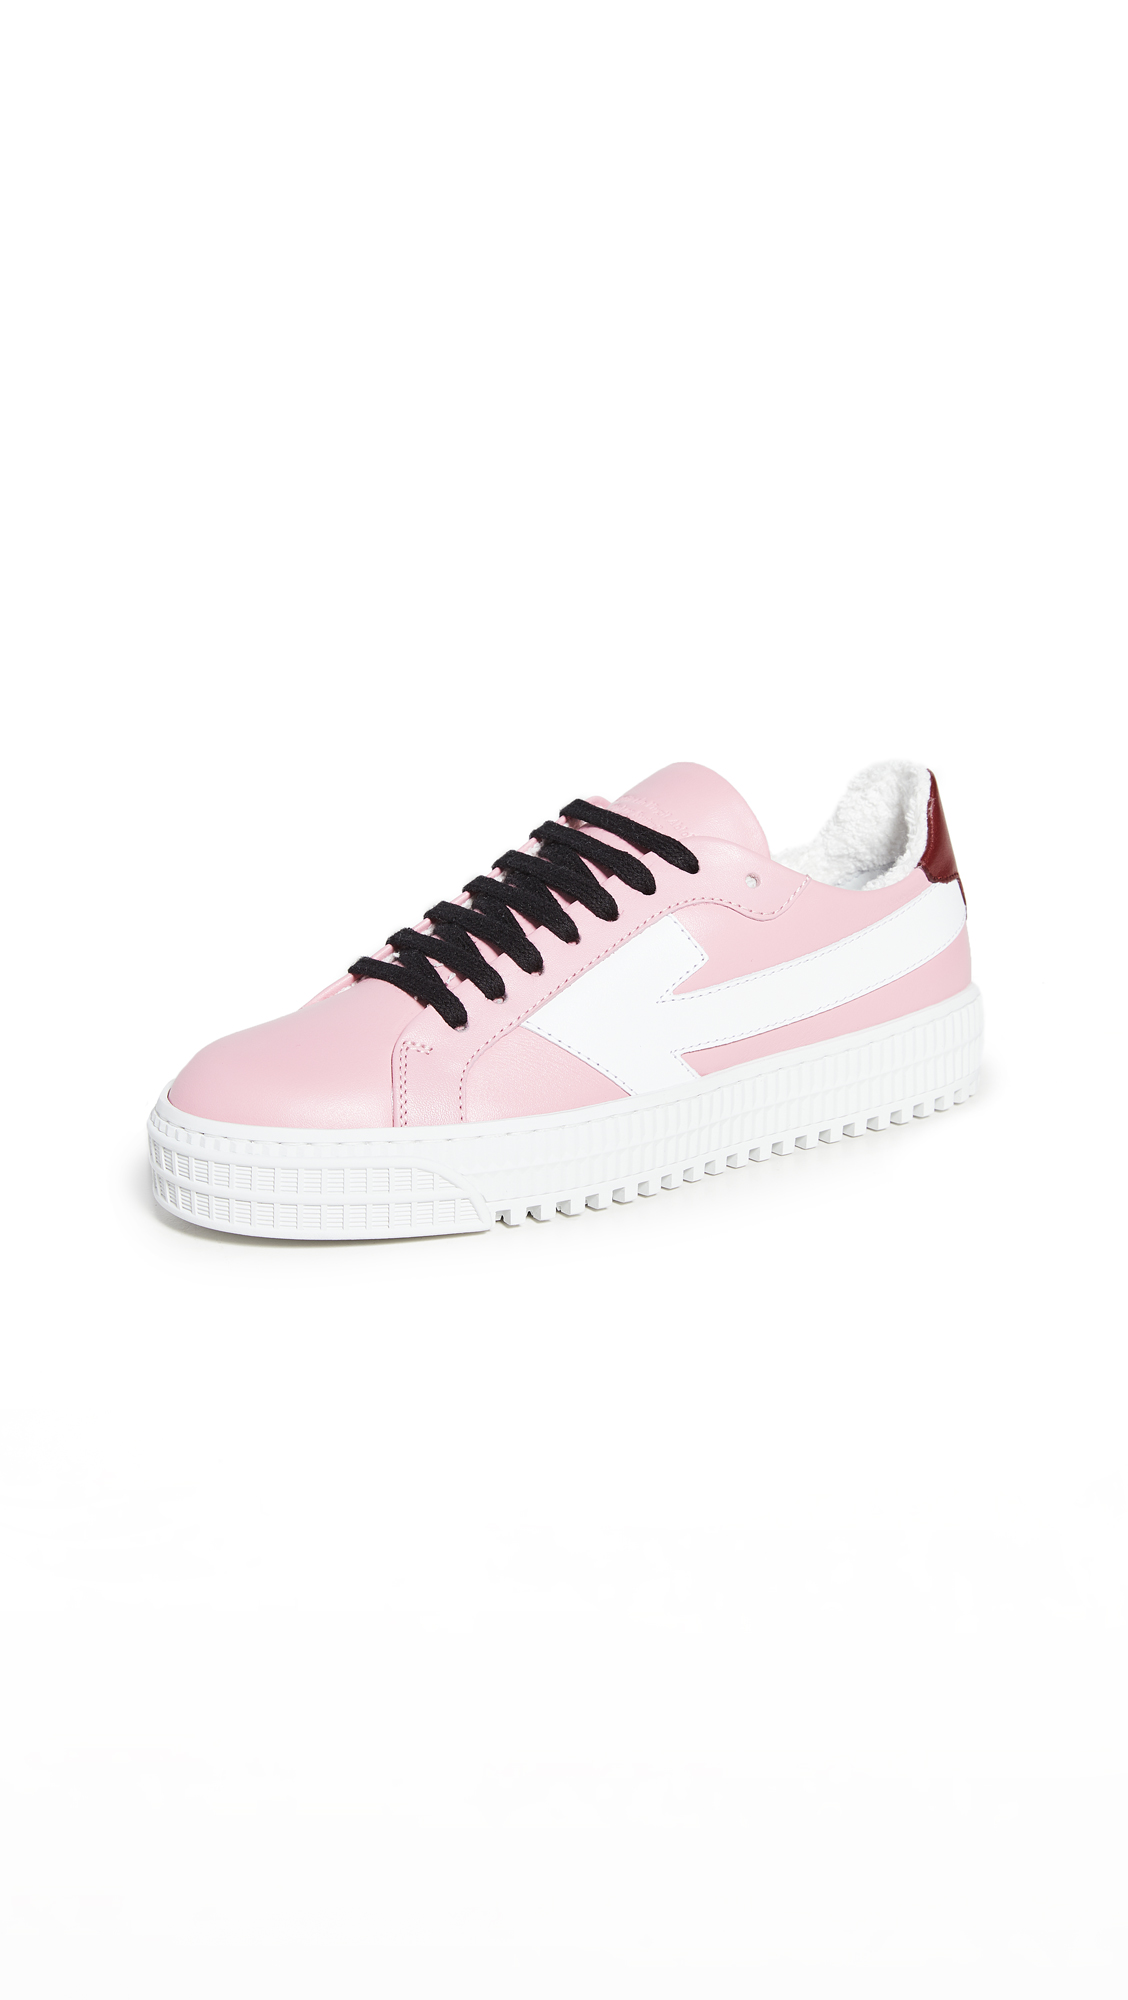 Off-White Arrow Sneakers